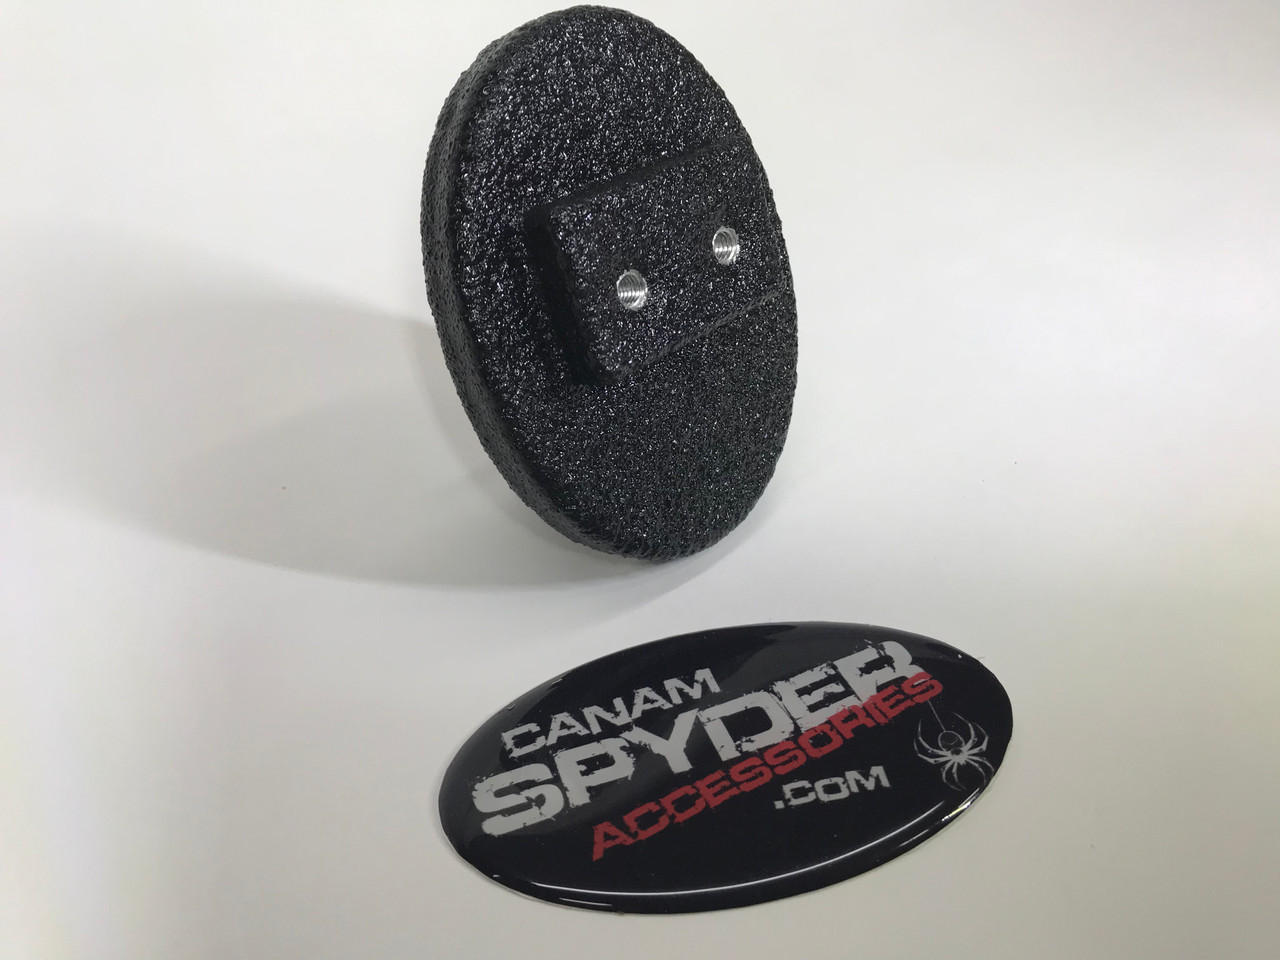 Spyder Brake Pedal - Oval - Billet aluminium with LineX - RT 2010-2019 - All RS-GS -ST - All F3